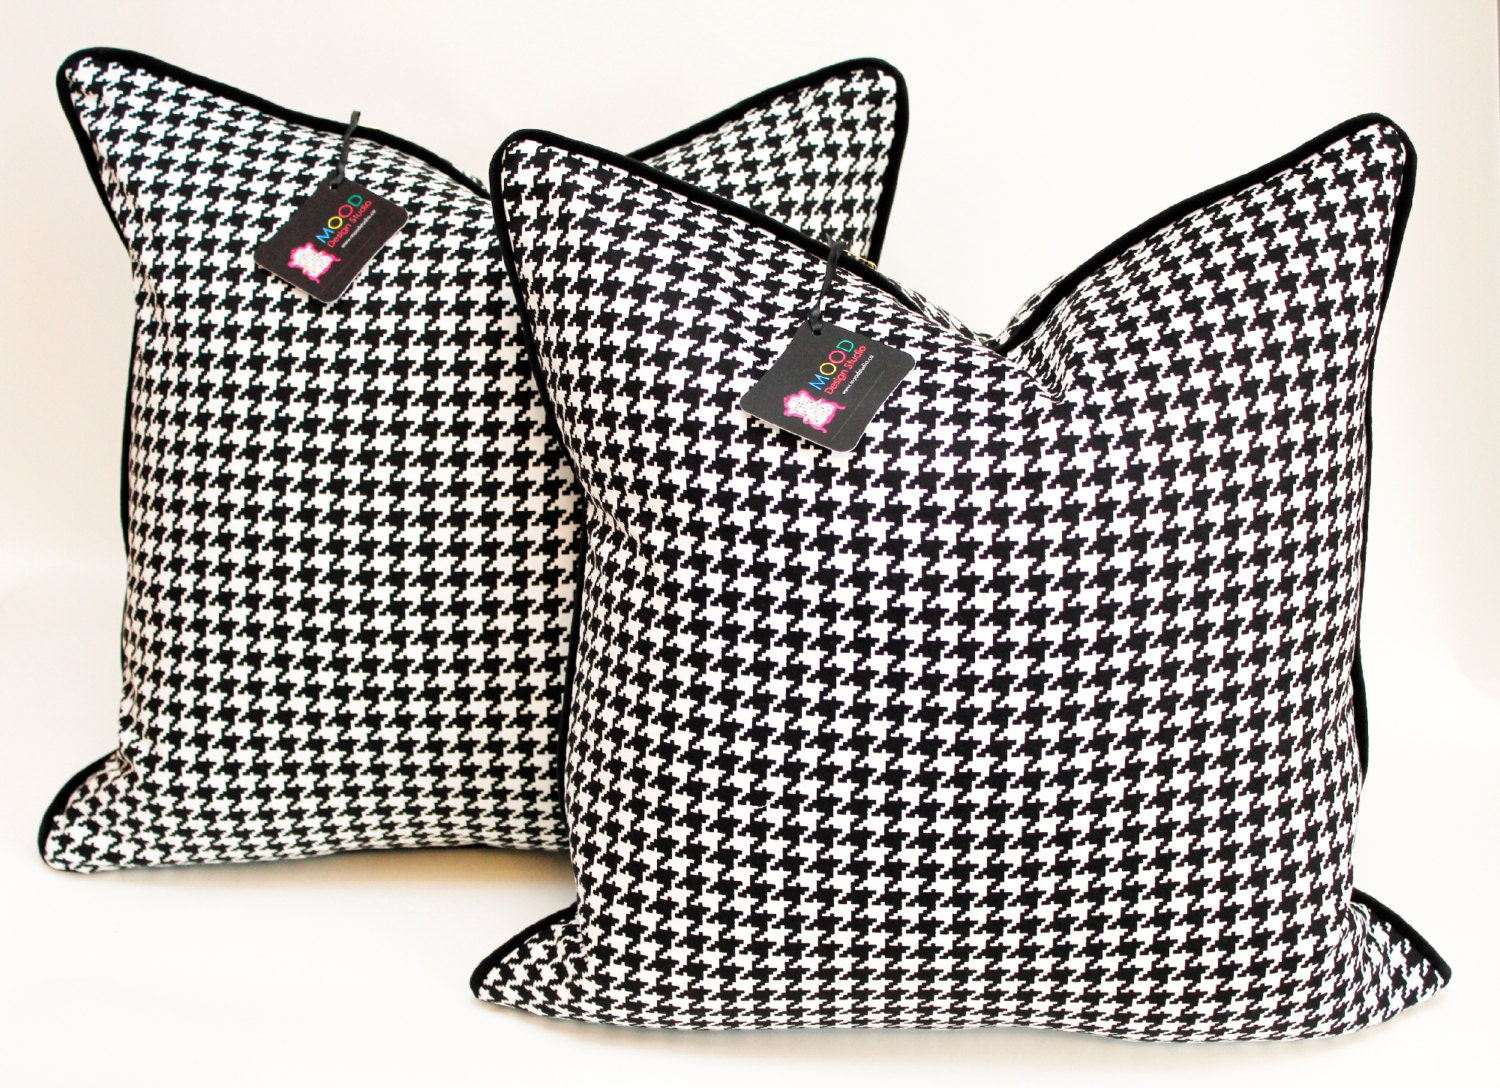 Black And White Houndstooth Throw Pillows : Unavailable Listing on Etsy